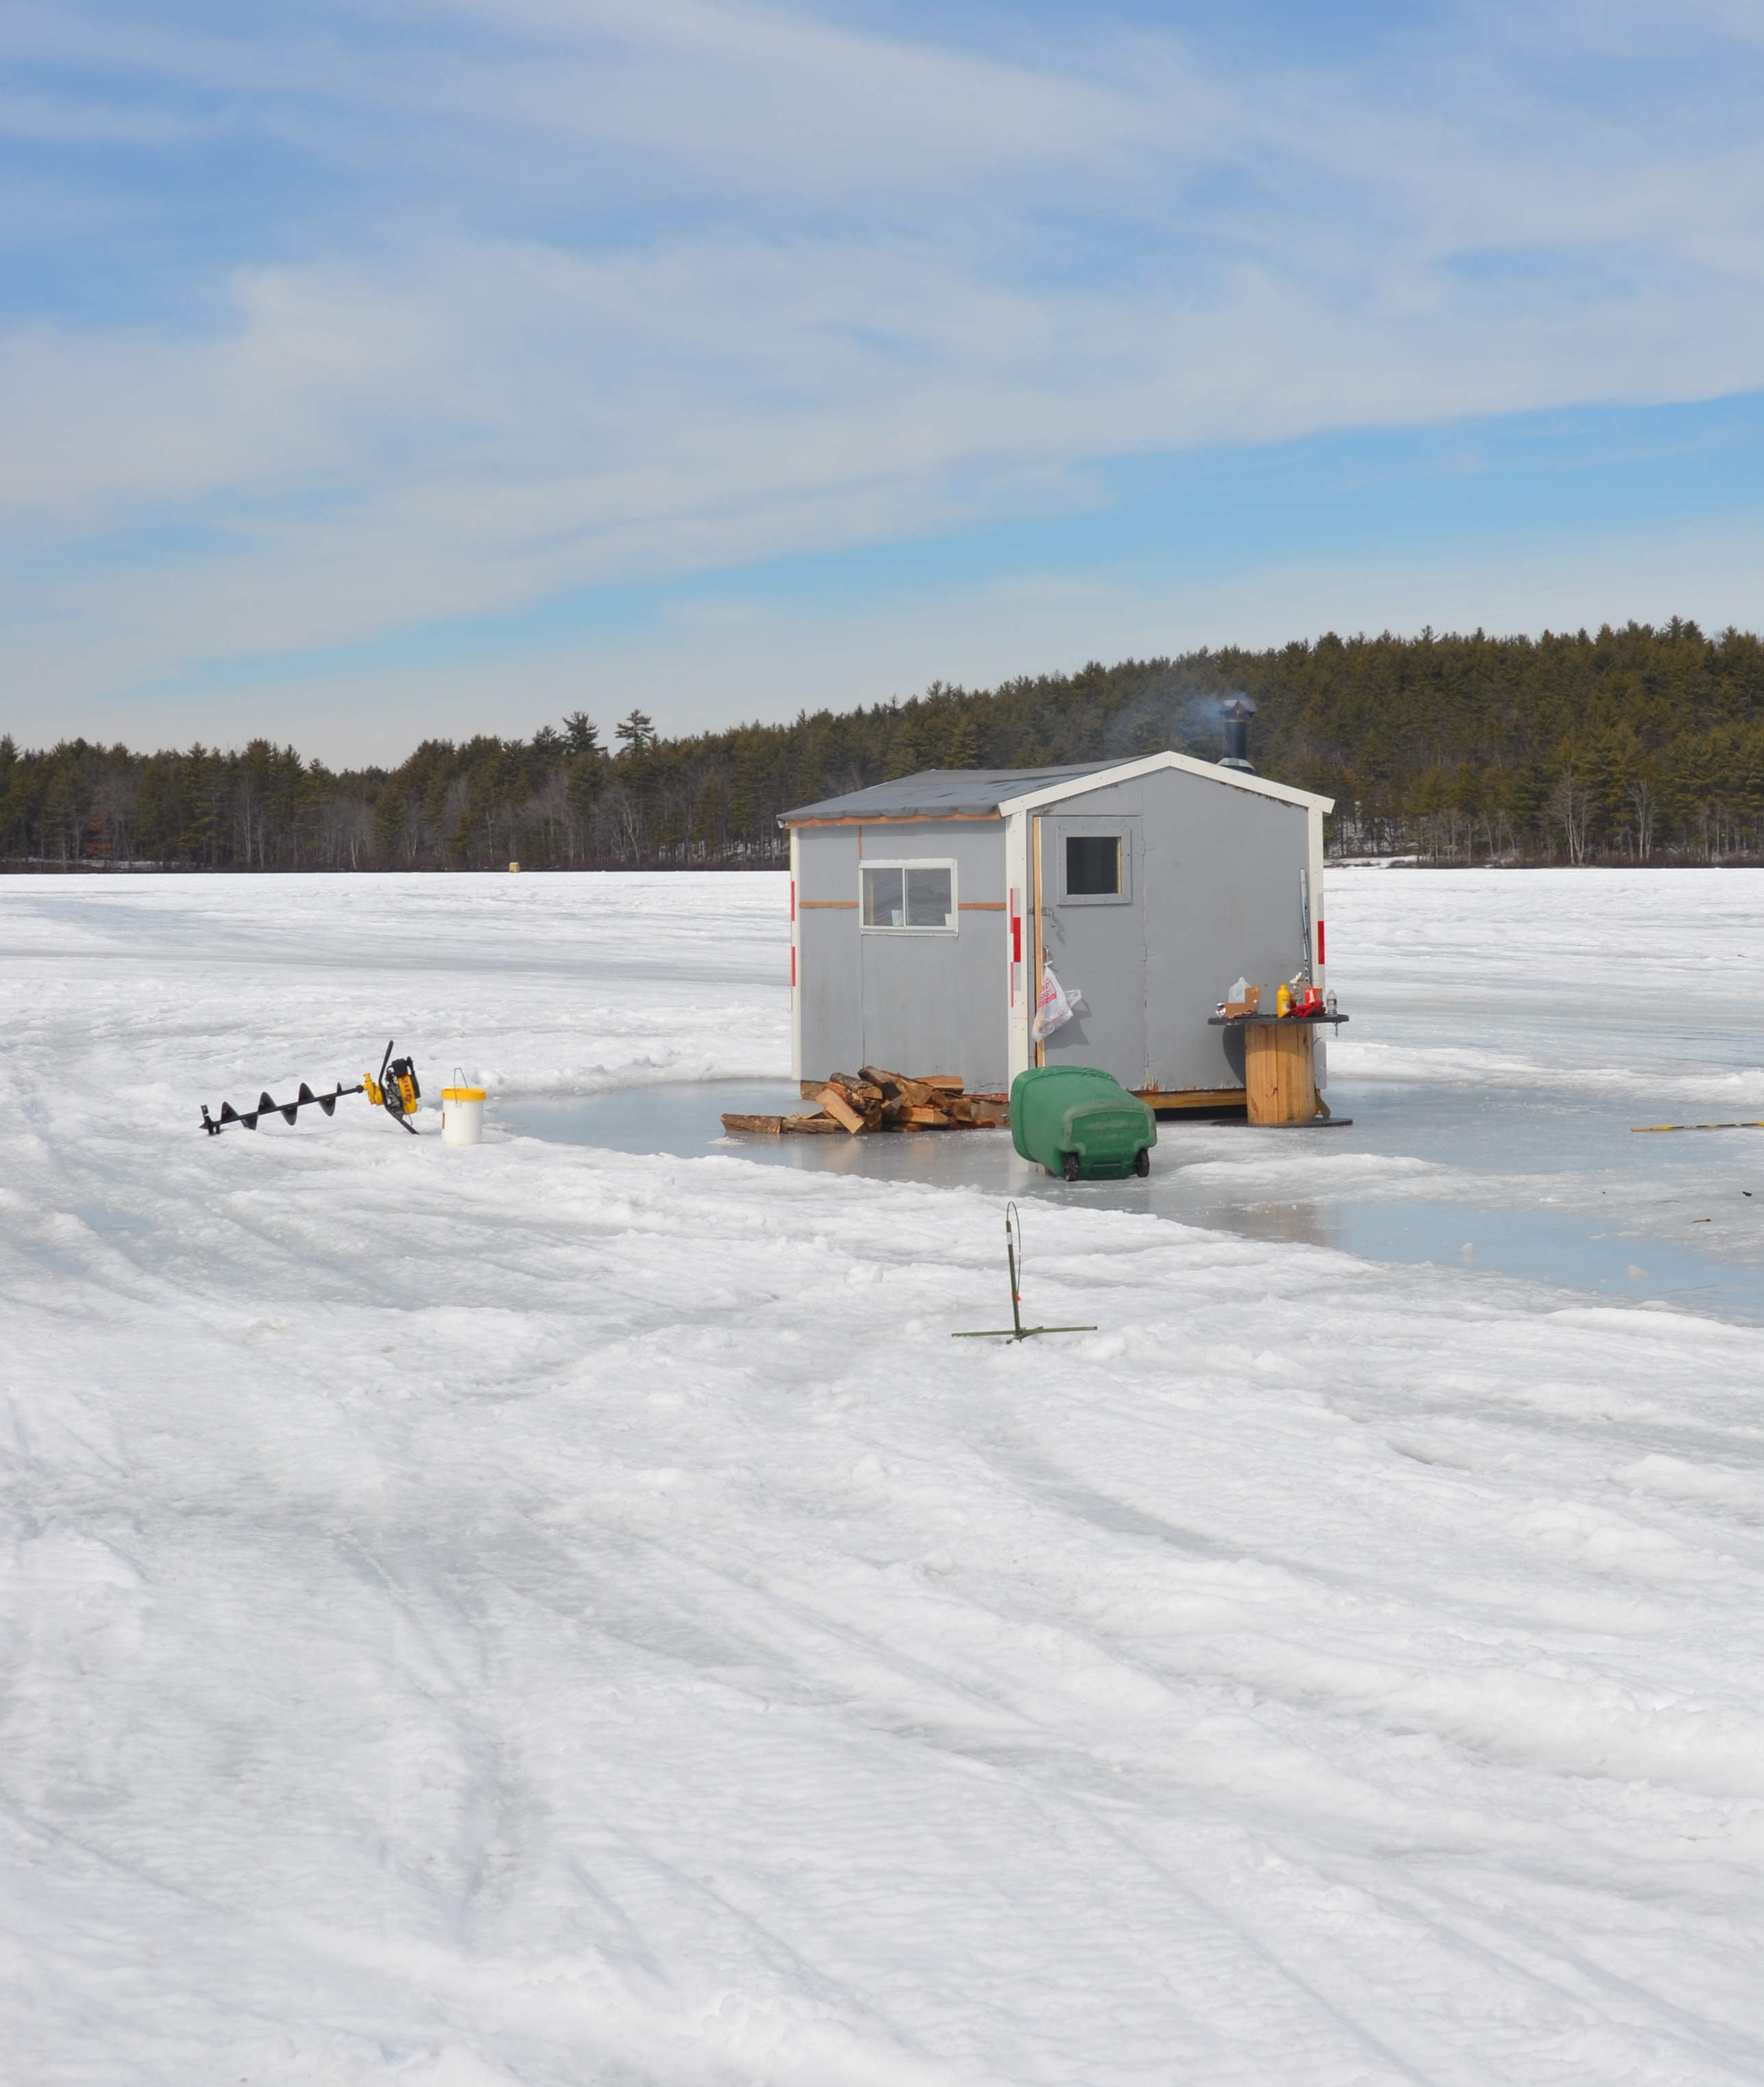 8 things learned about ice fishing in 15 minutes atop a for Ice fishing hut